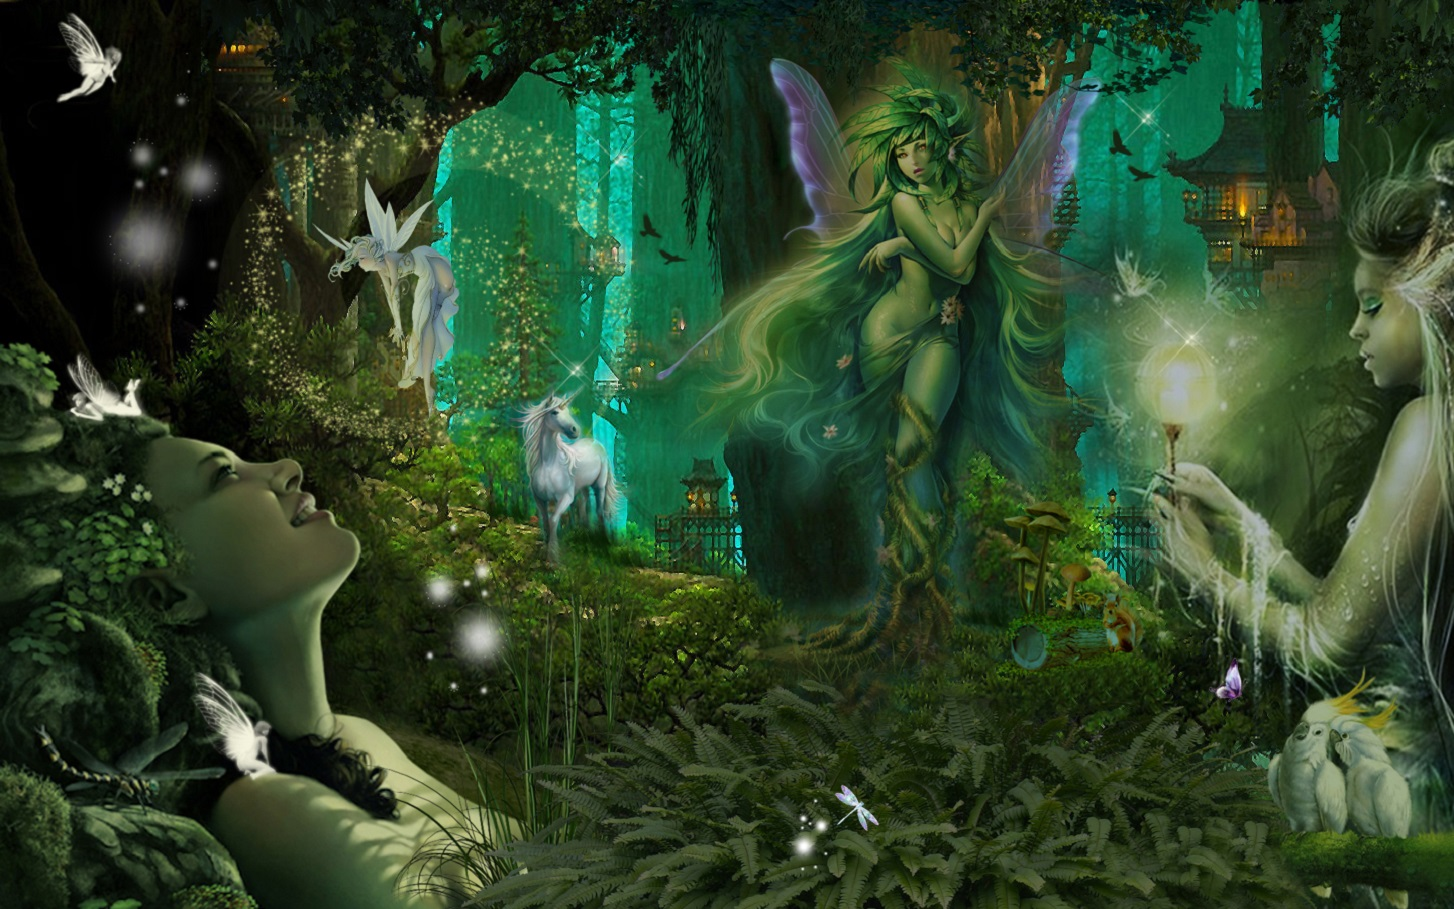 My Magical forest world for all my good friends.